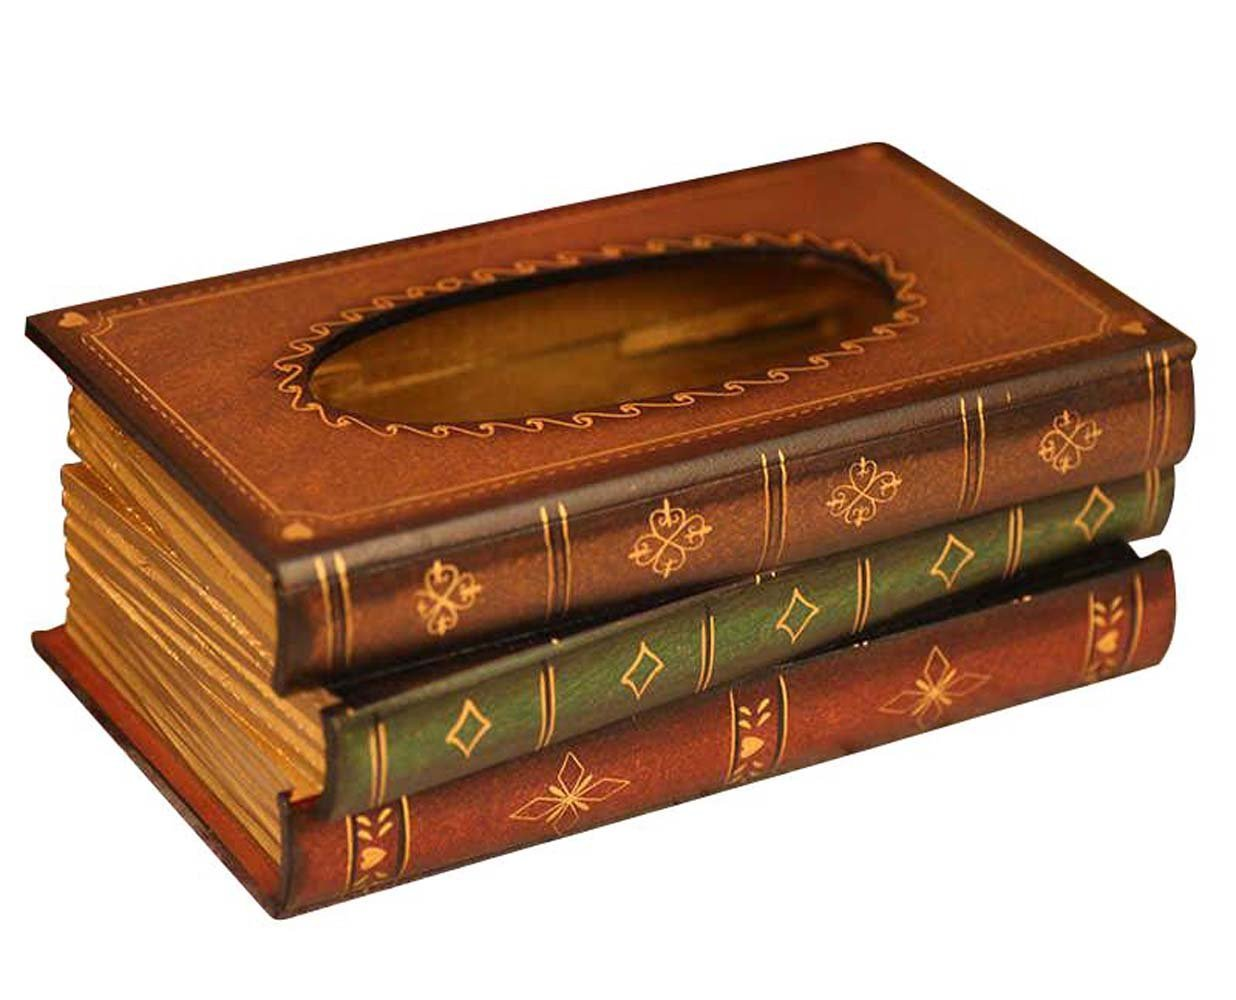 Tosnail Elegant Wooden Antique Book Tissue Holder Dispenser/Novelty Napkin Holder